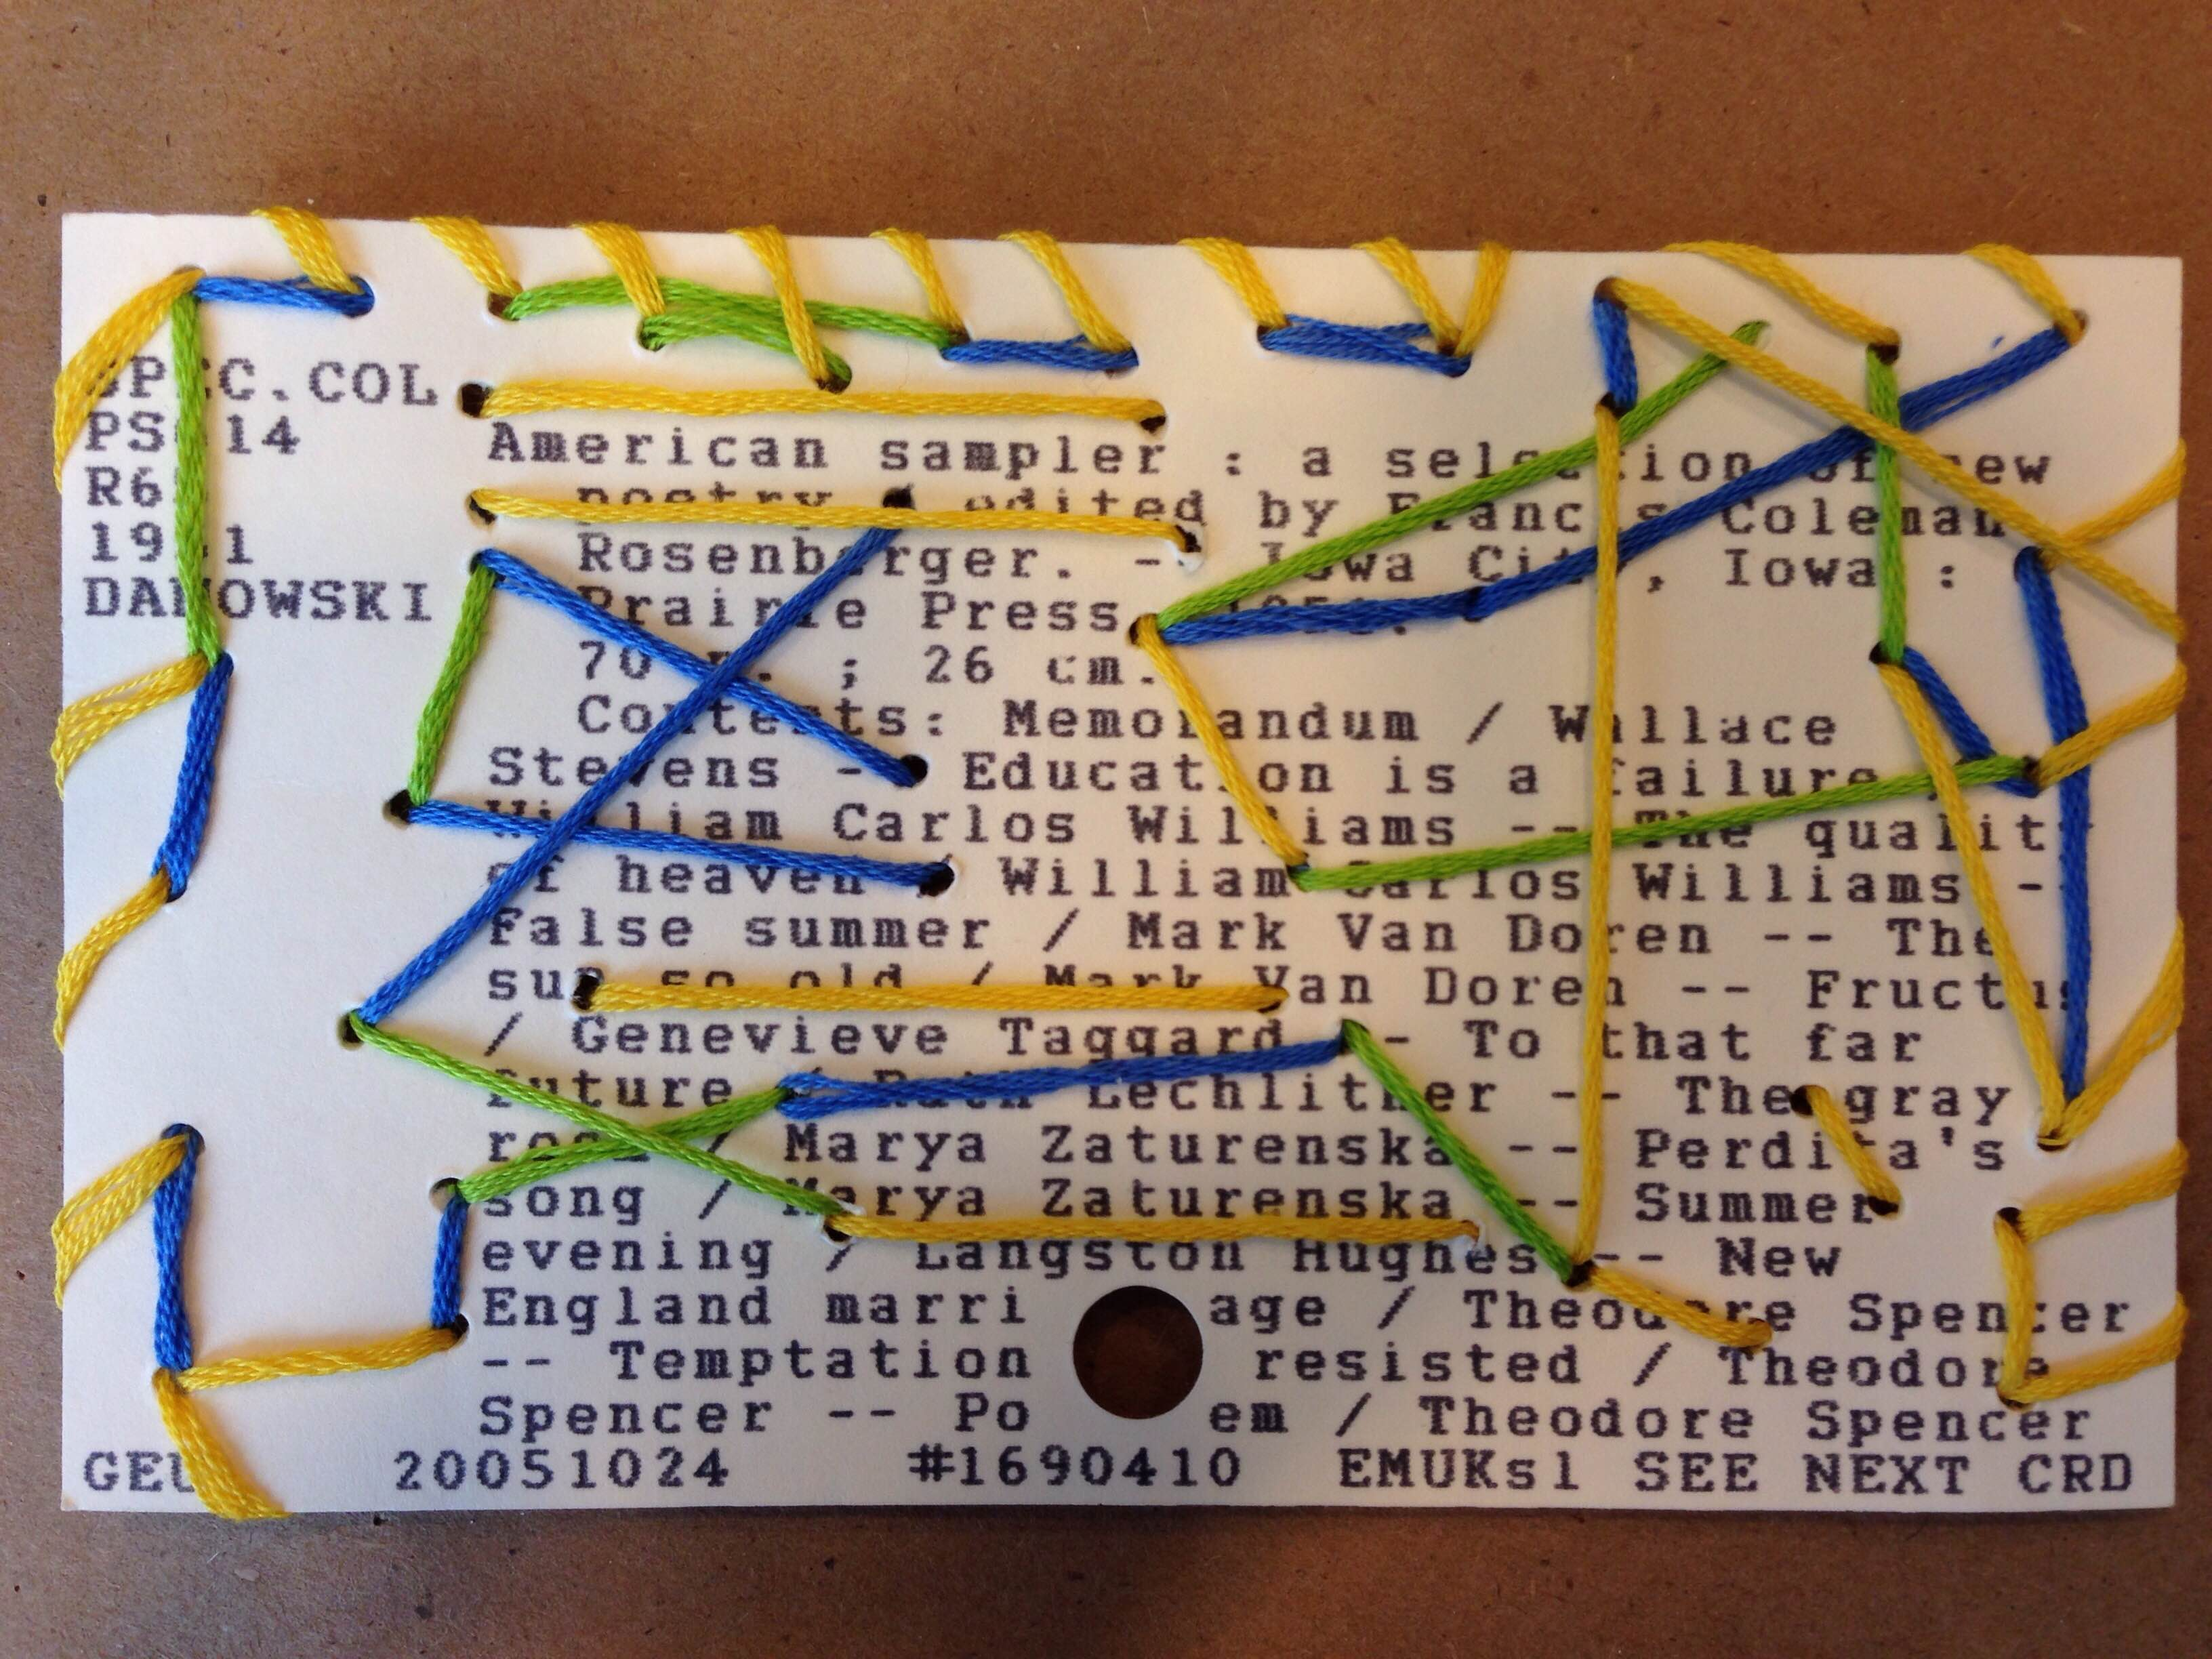 Card catalog card sewn in a random pattern with green, blue, and yellow embroidery thread.